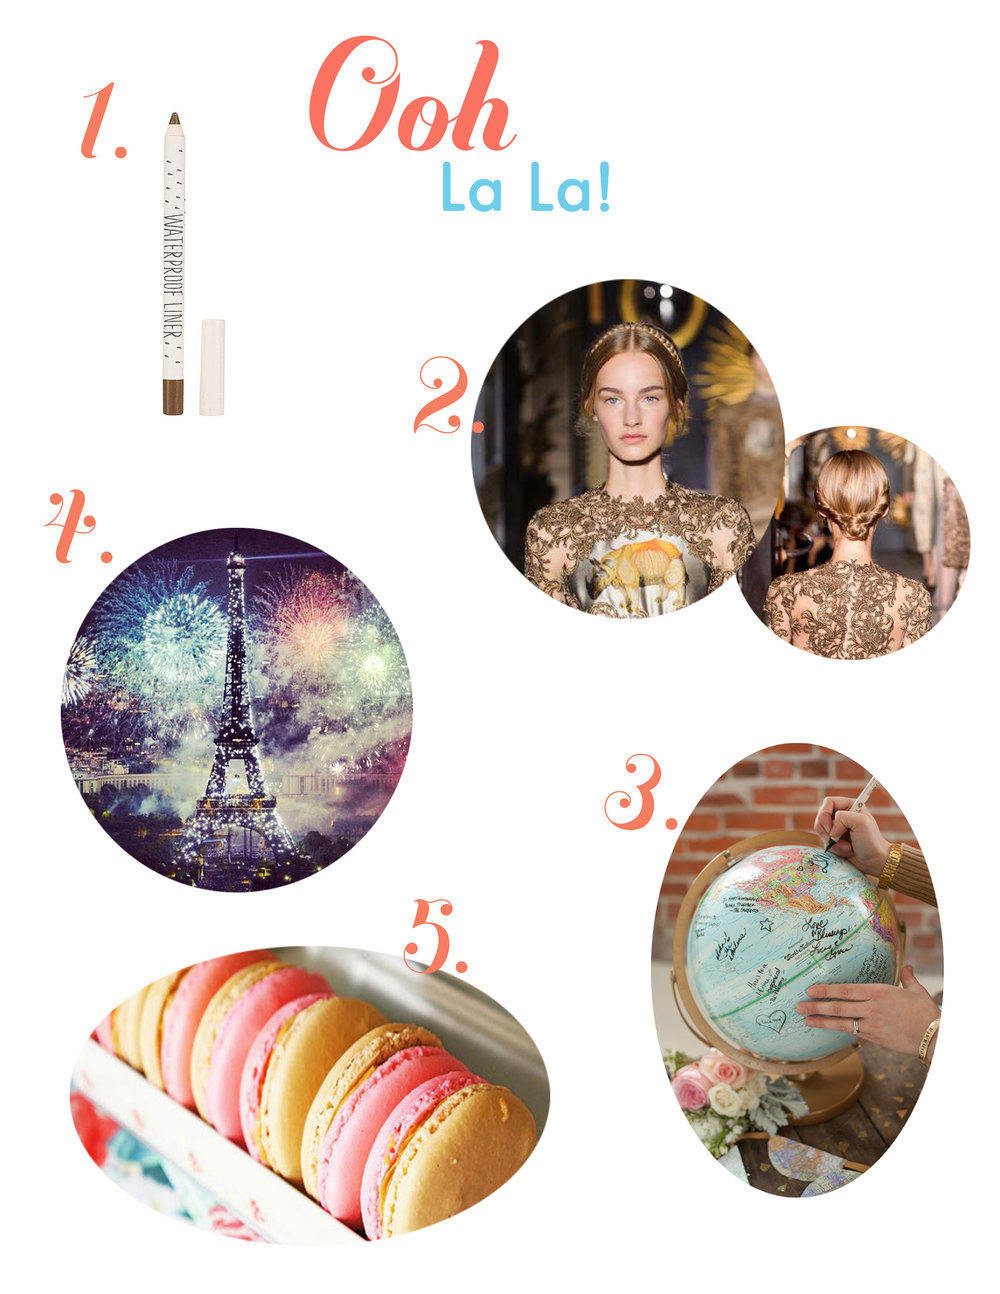 Bastille Day, waterproof mascara, macaroons, braided hair, globe wedding guest book